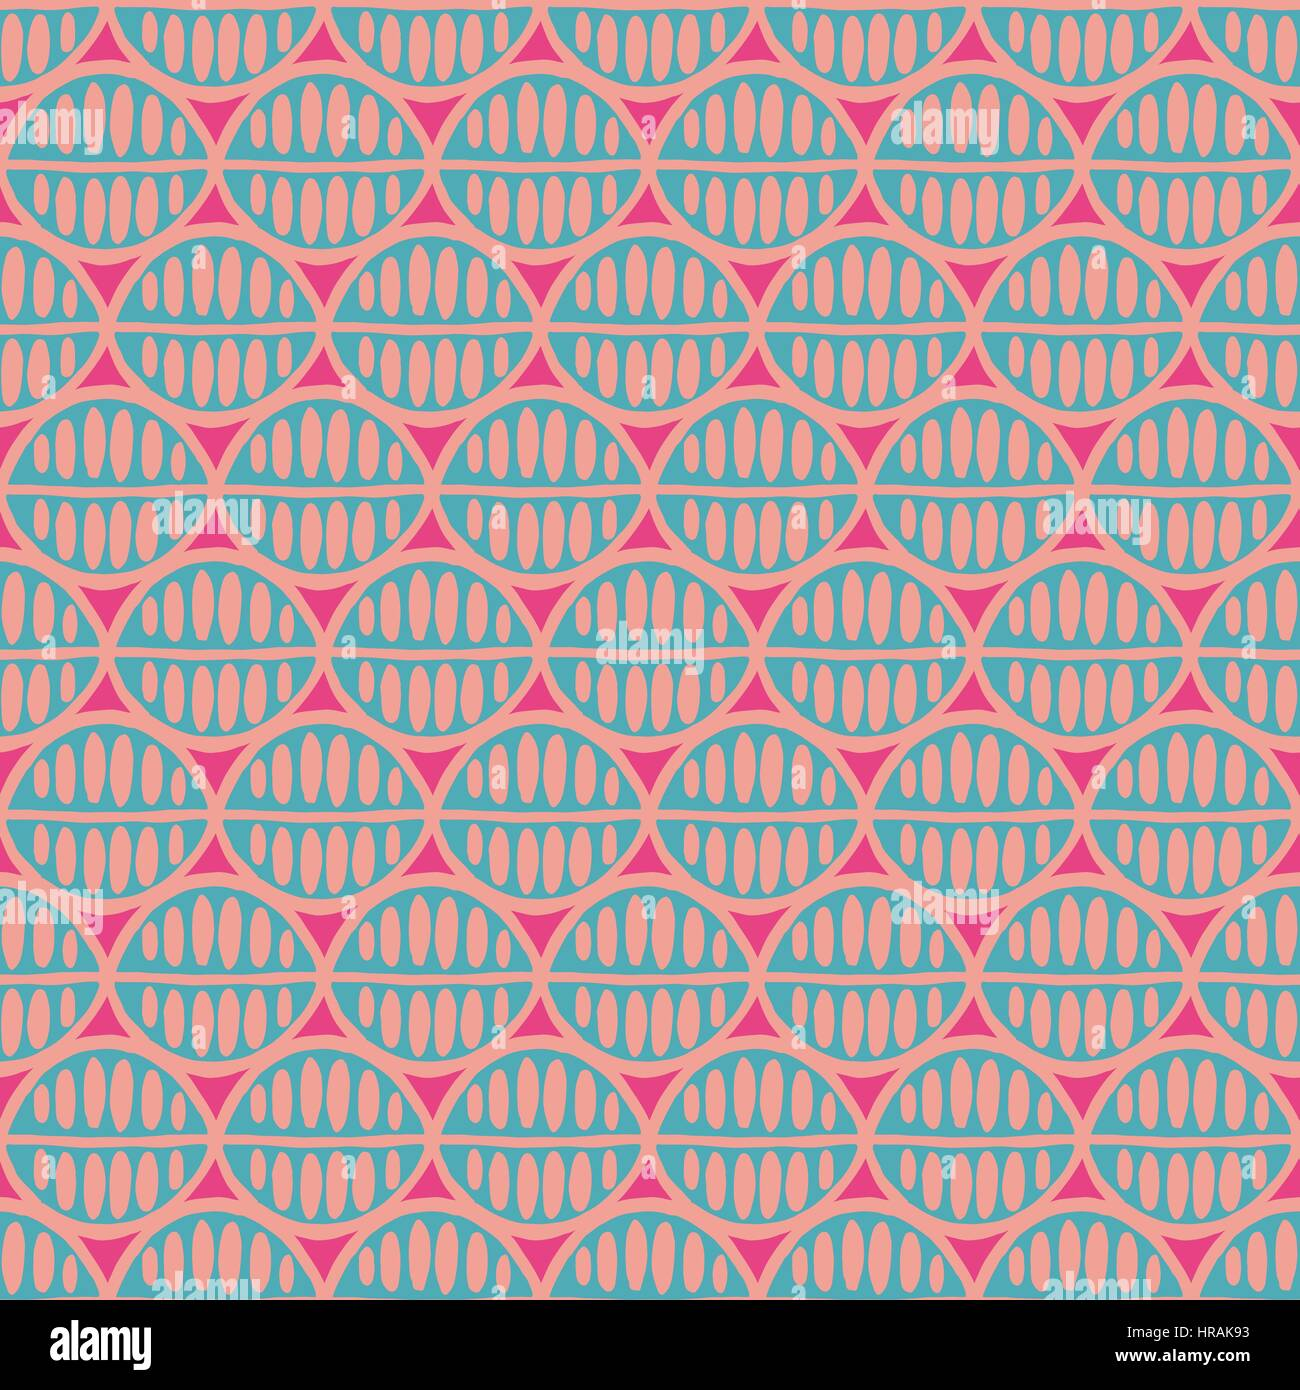 Seamless floral pattern with primitive leaves. Tribal ethnic background, simplistic geometry, mint and pink. Textile - Stock Image